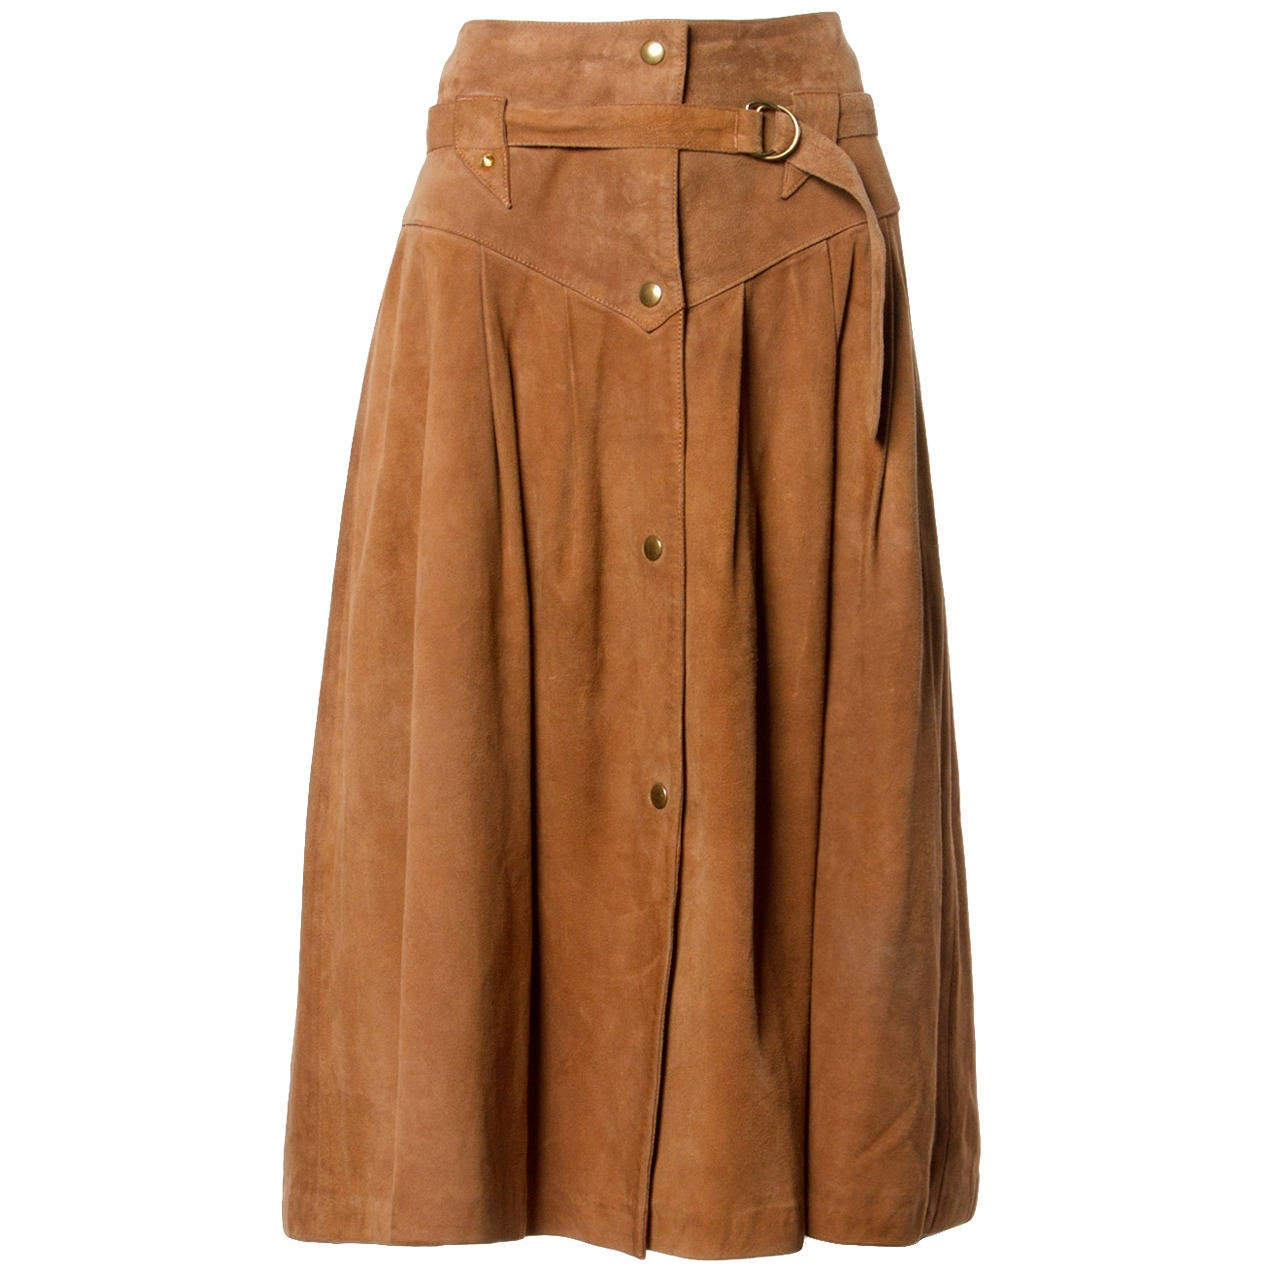 Claude Montana pour Ideal Cuir Vintage 1980s 80s Brown Leather Skirt For Sale